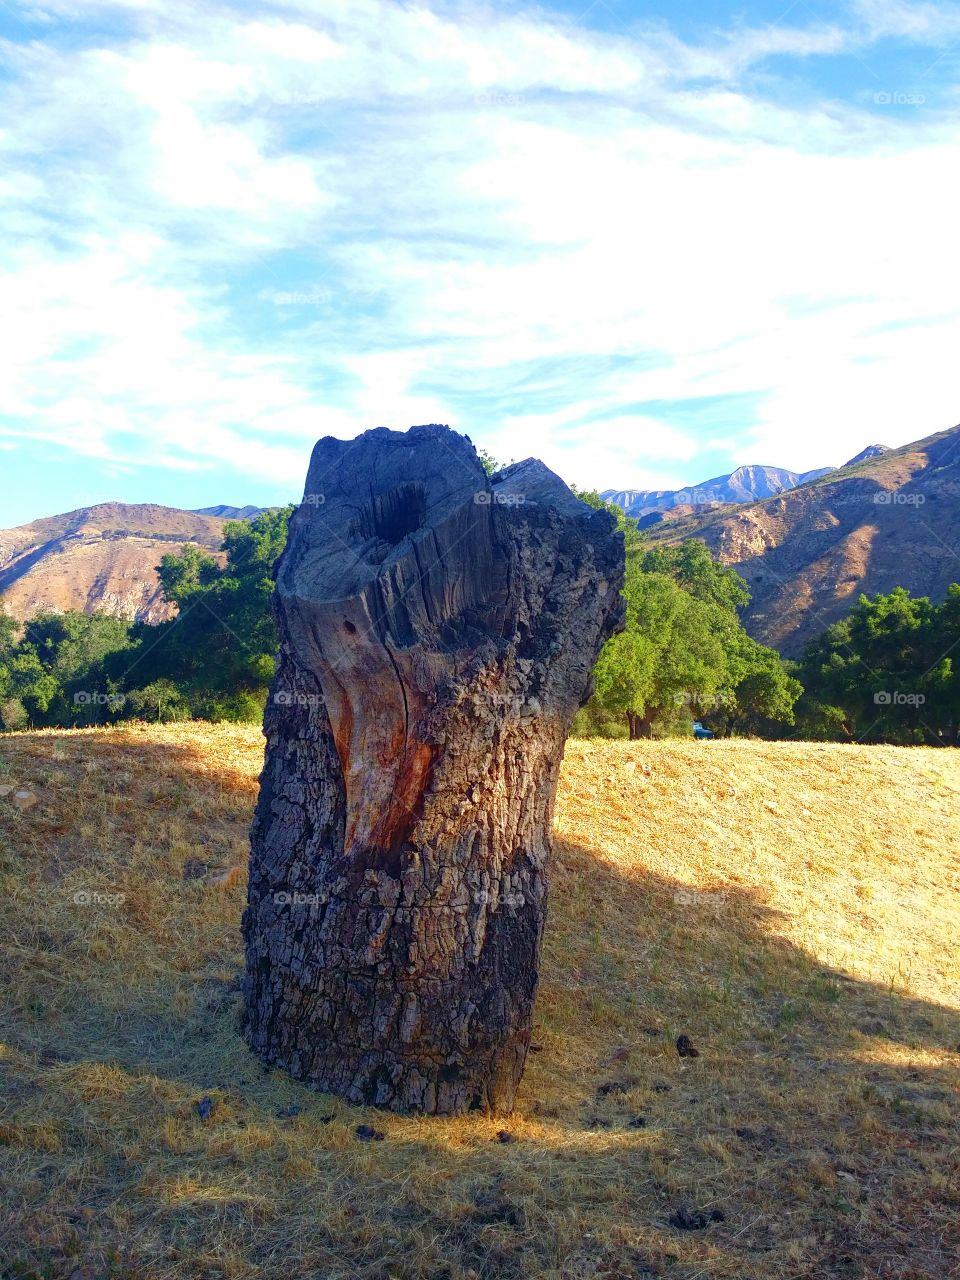 Lonely Stump. Had a great hike